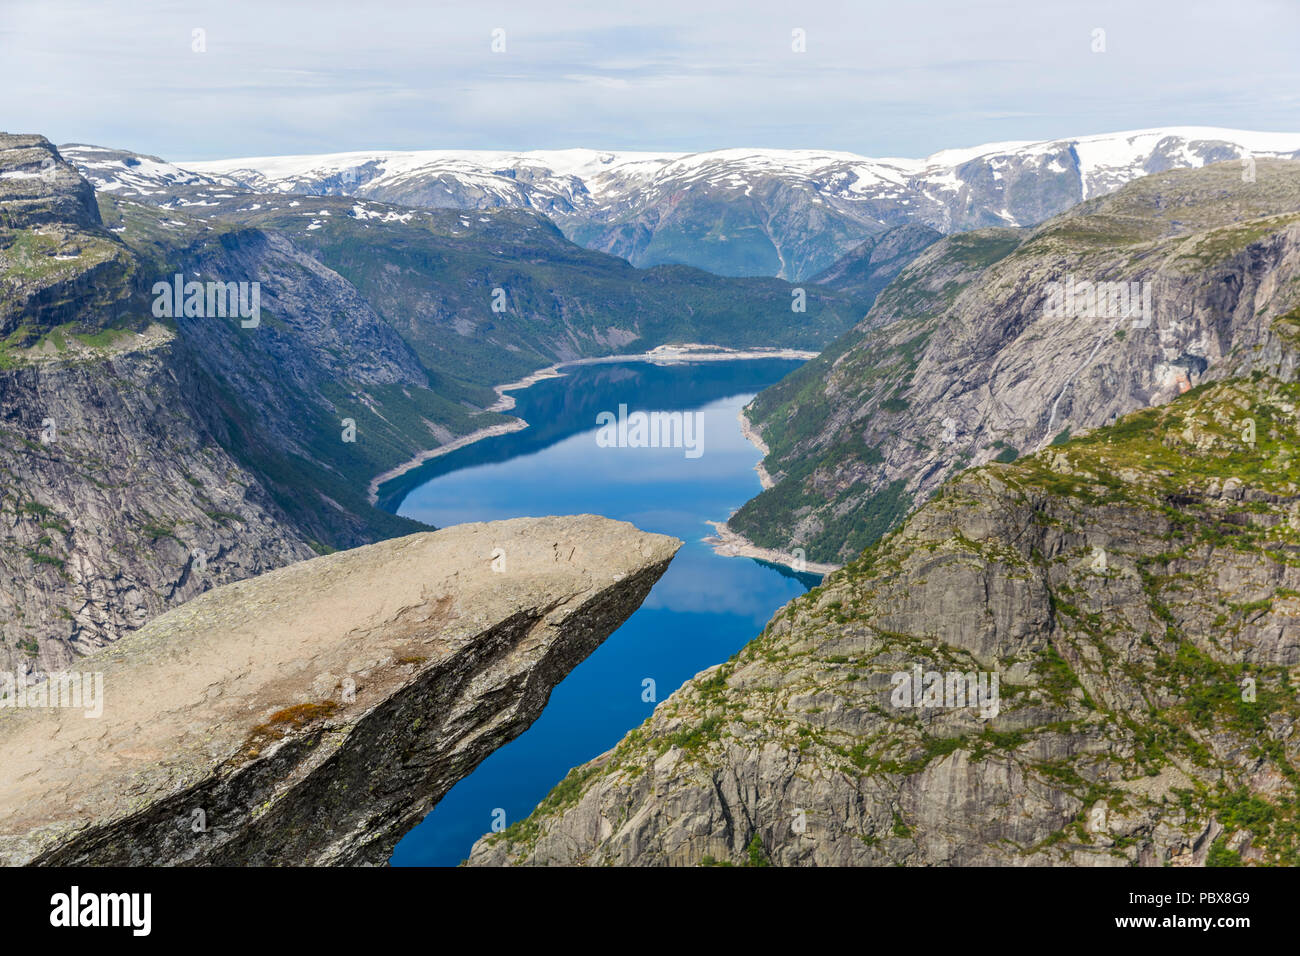 Trolltunga rock formation is one of the most popular and scenic places in Norway - Stock Image